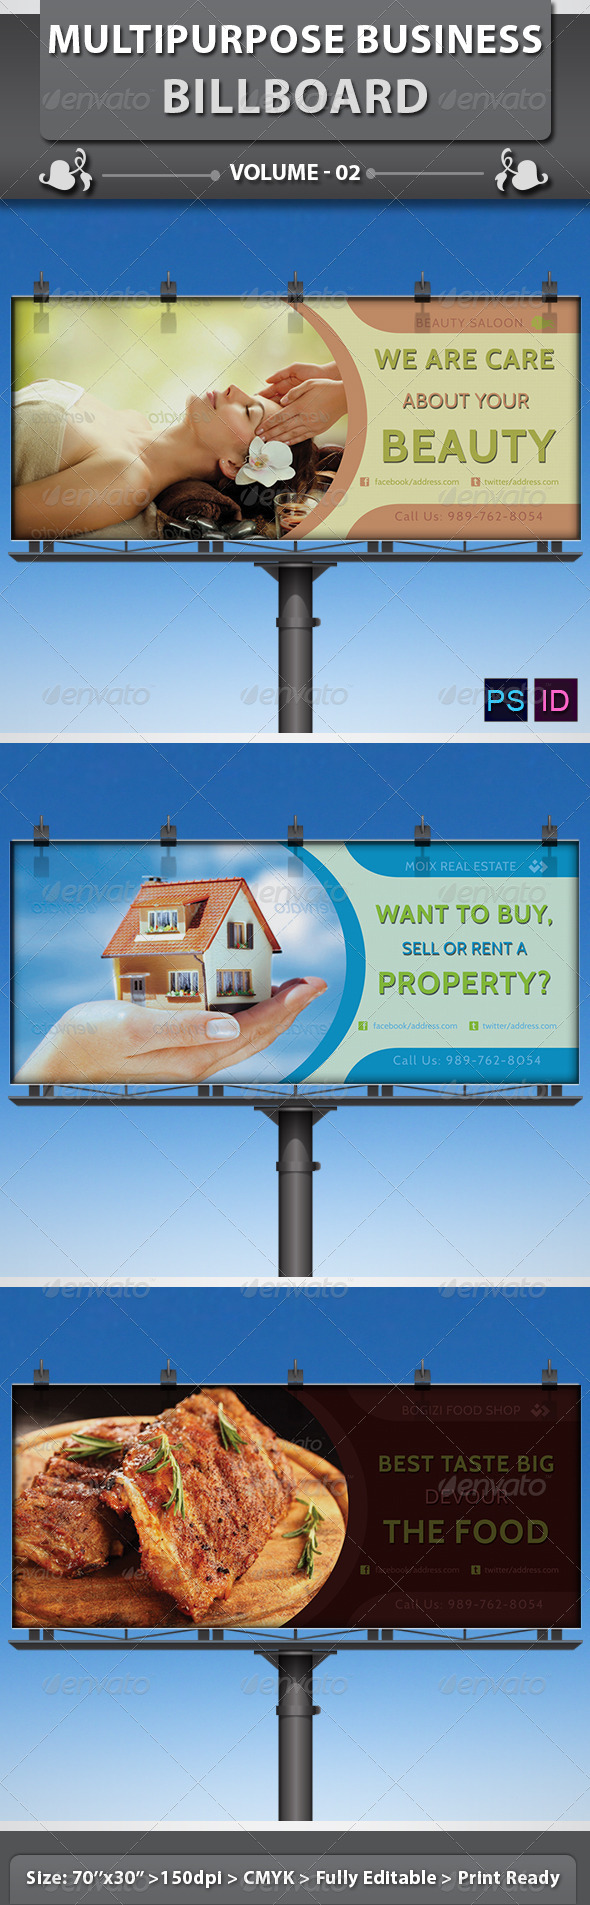 GraphicRiver Multipurpose Business Billboard v2 5215236